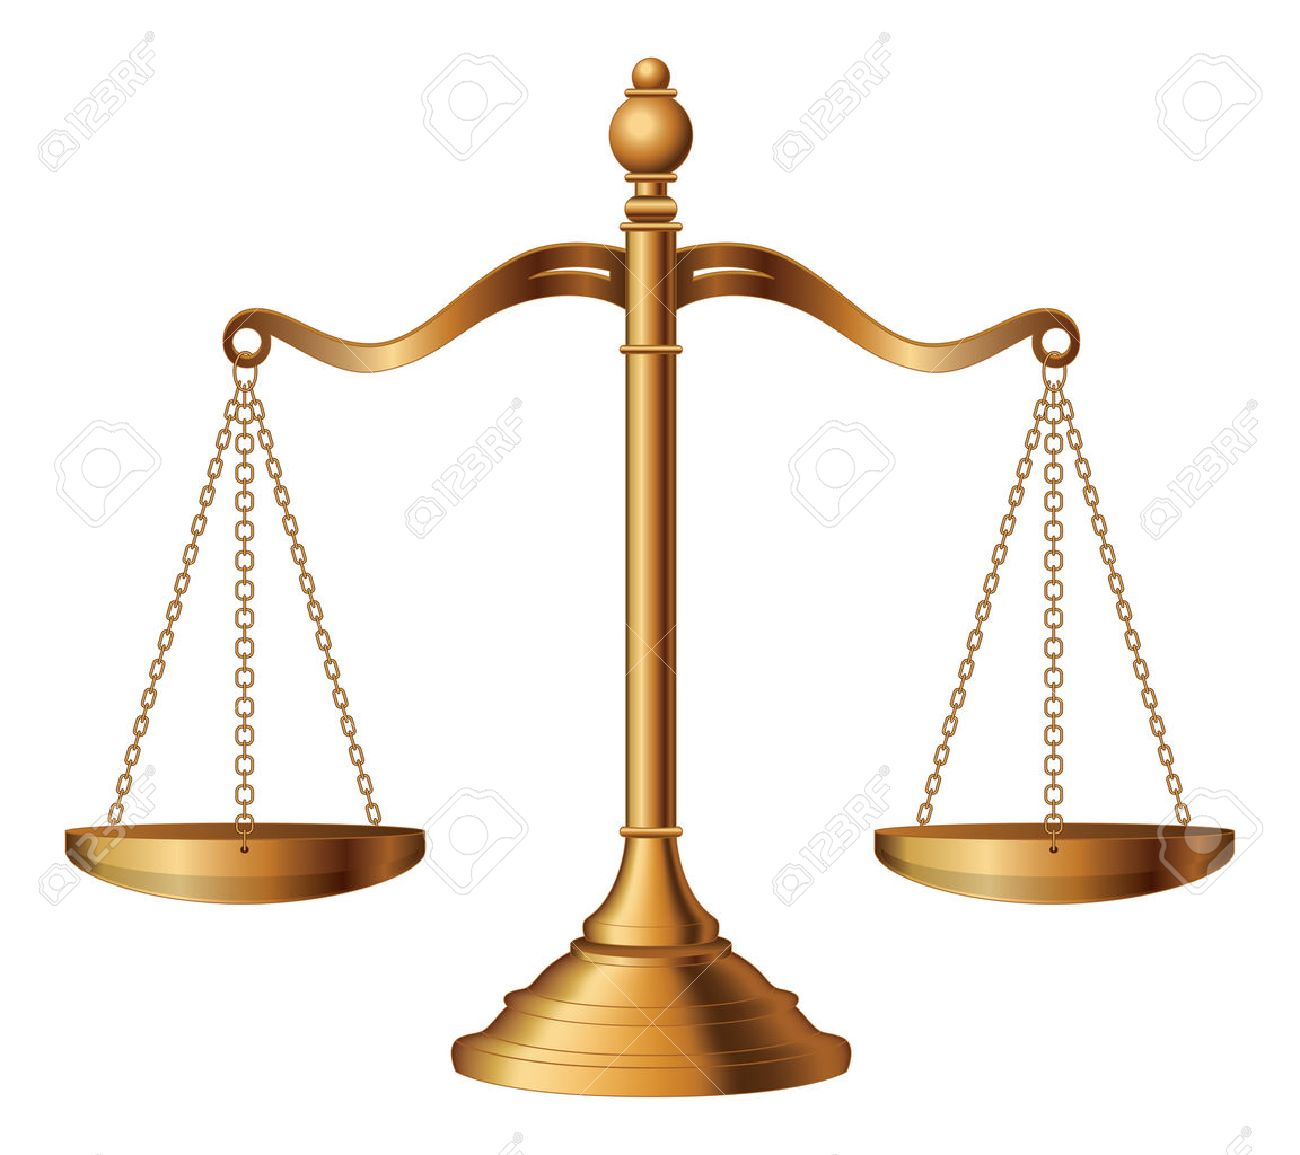 scales of justice is an illustration of the scales of justice